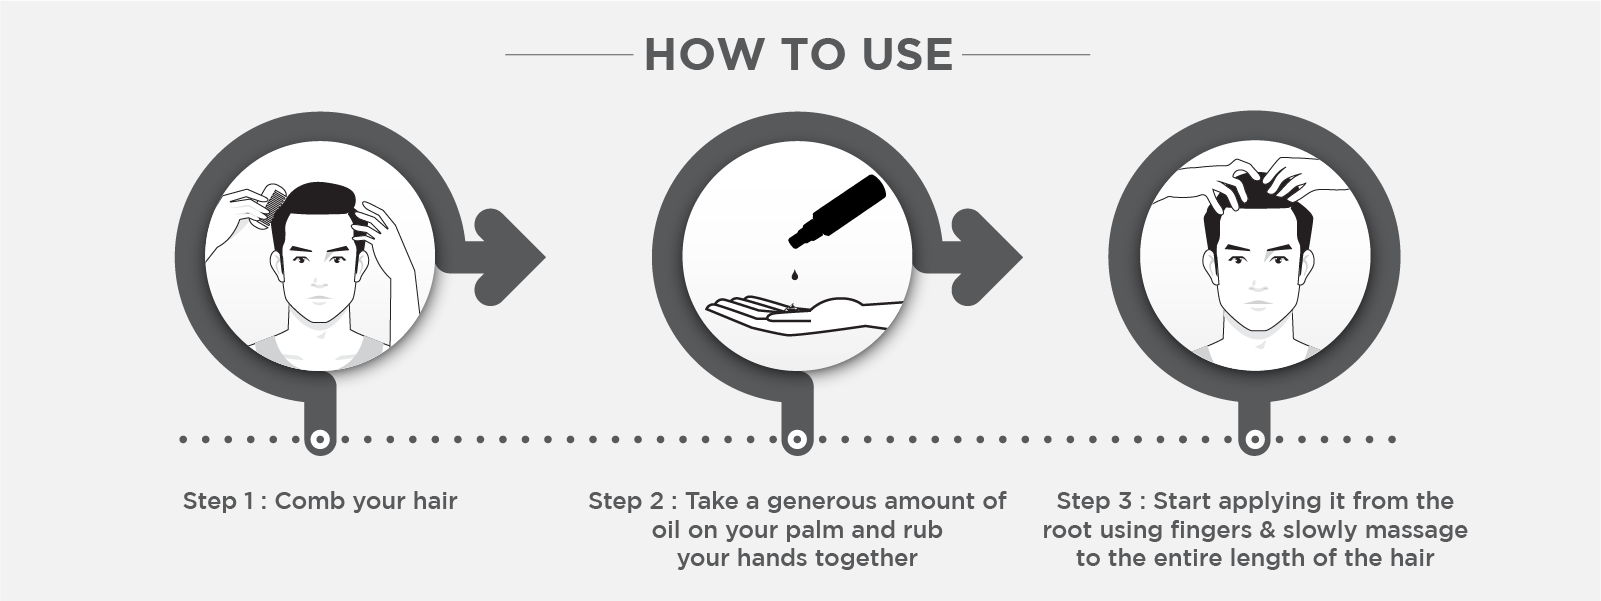 How to use hair growth oil